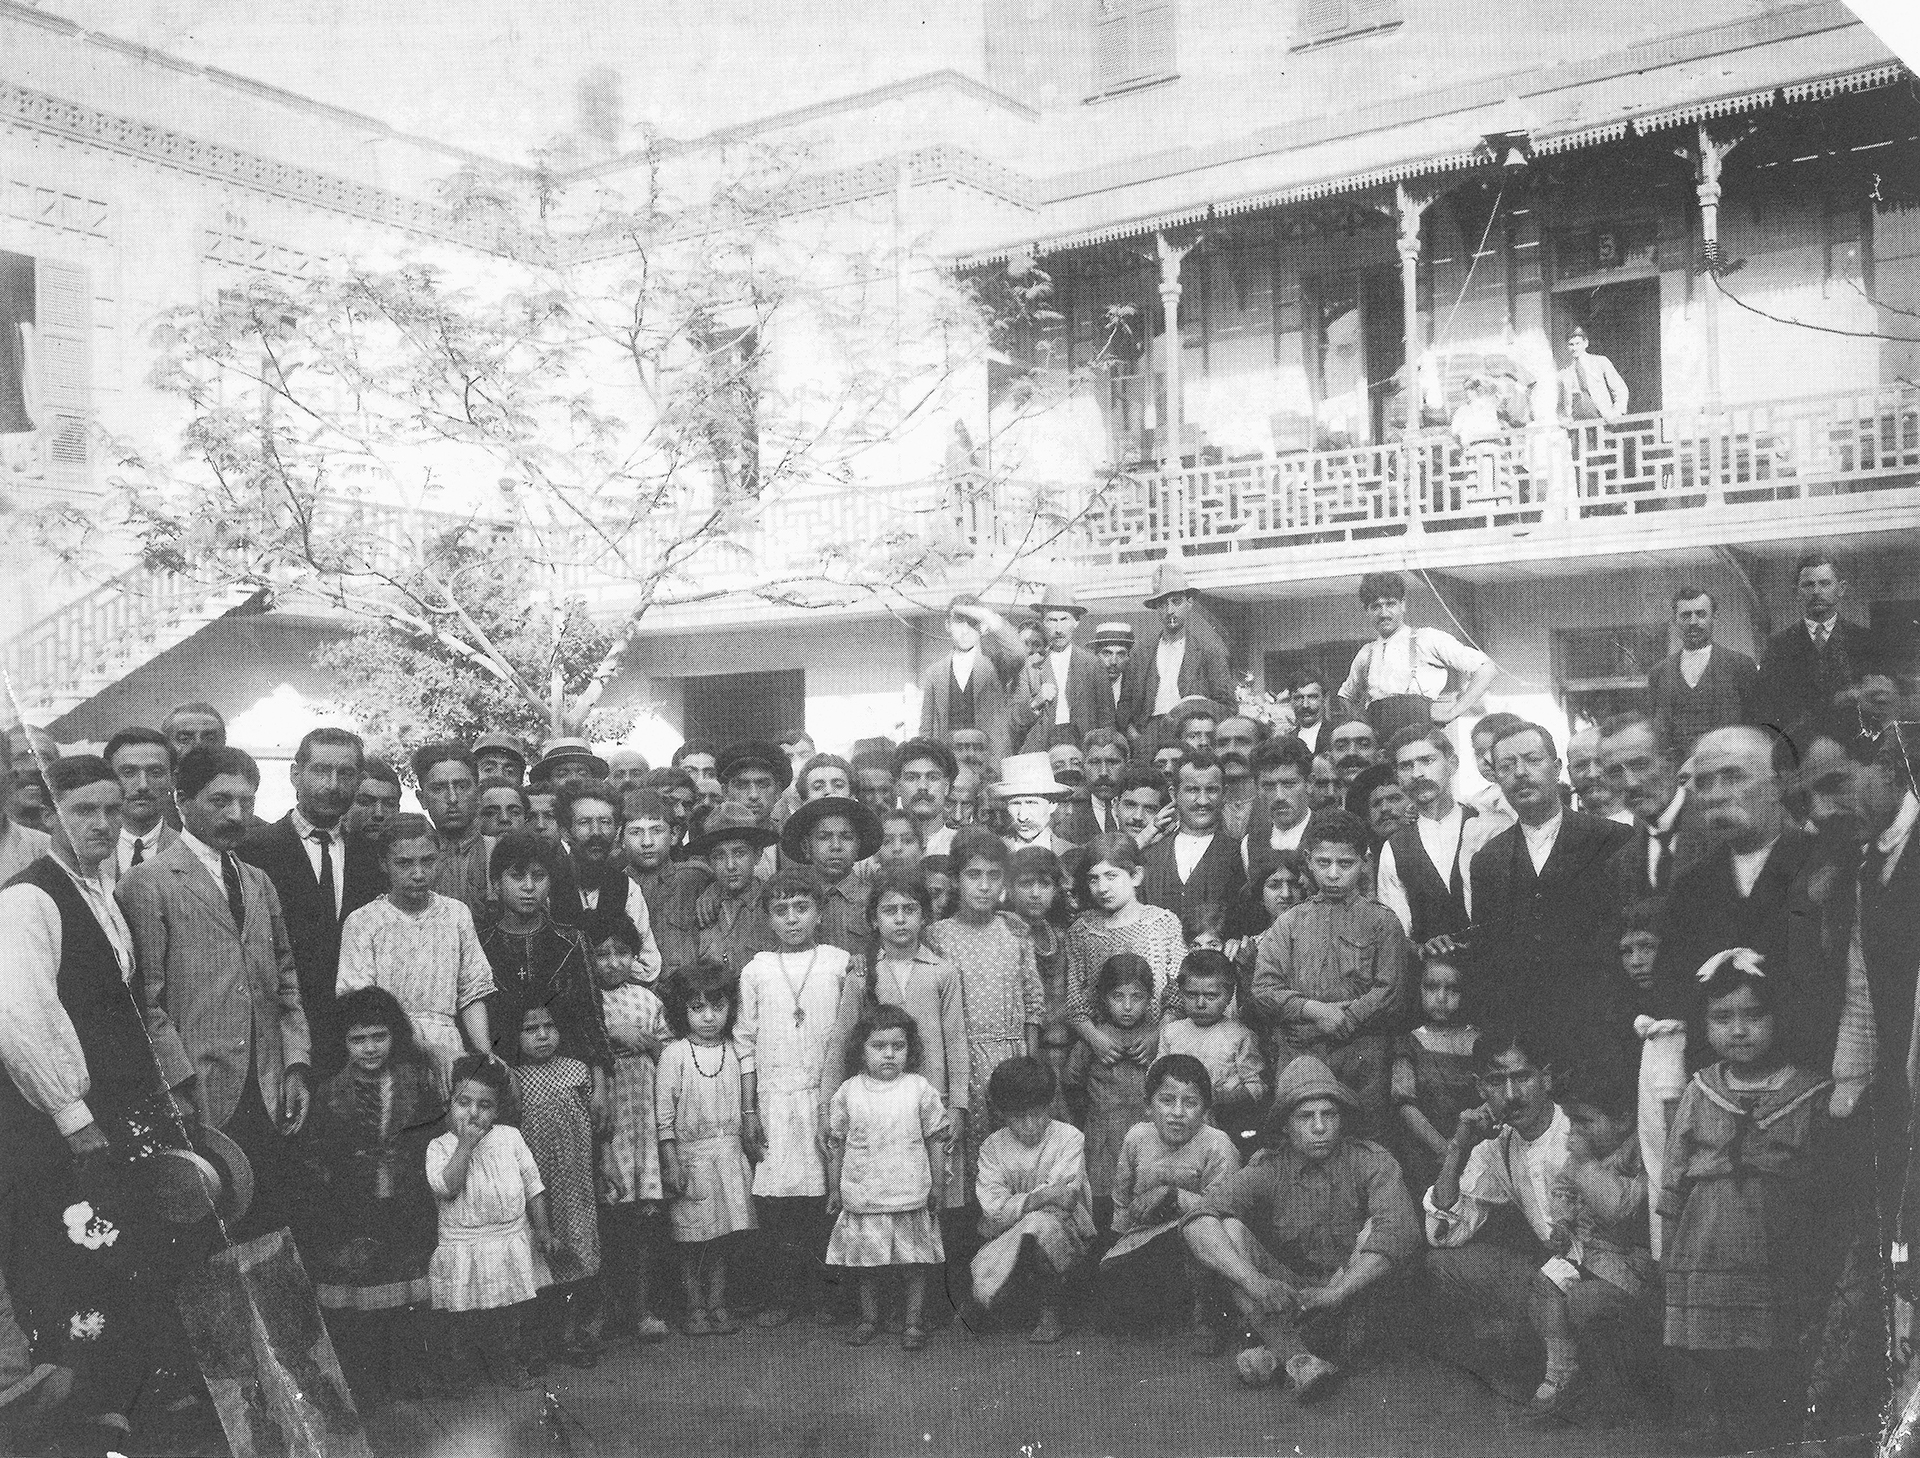 A group of 60 to 70 people in front of a building, with mostly children in the foreground.